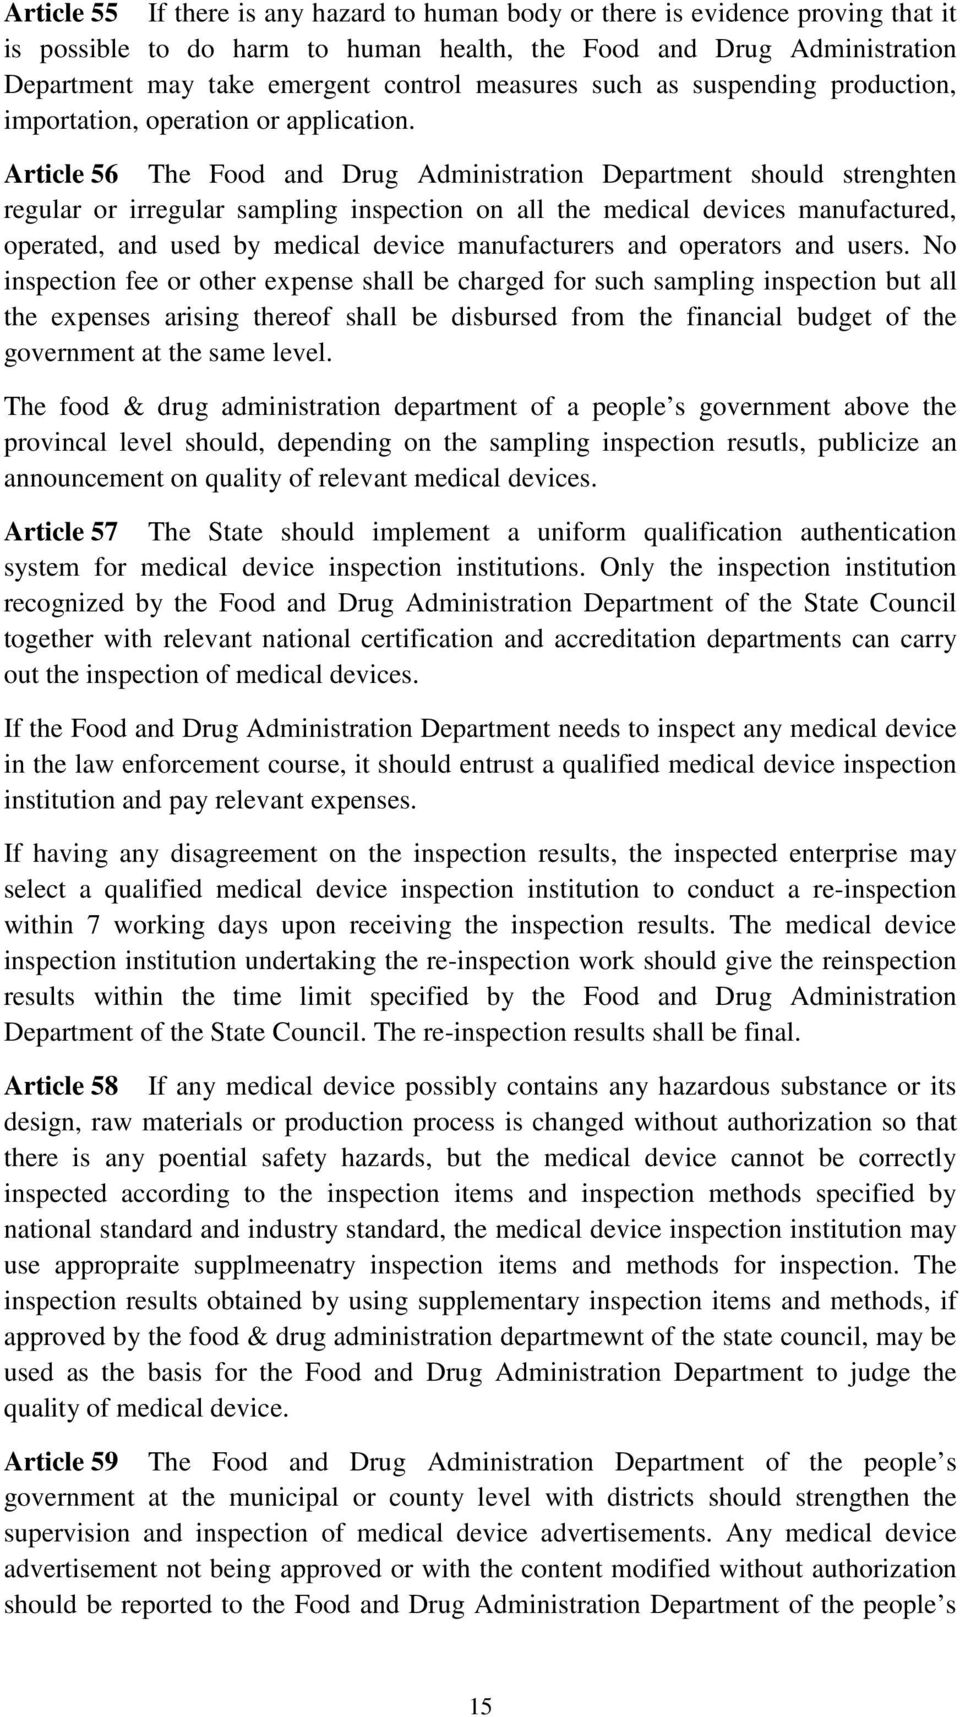 Article 56 The Food and Drug Administration Department should strenghten regular or irregular sampling inspection on all the medical devices manufactured, operated, and used by medical device